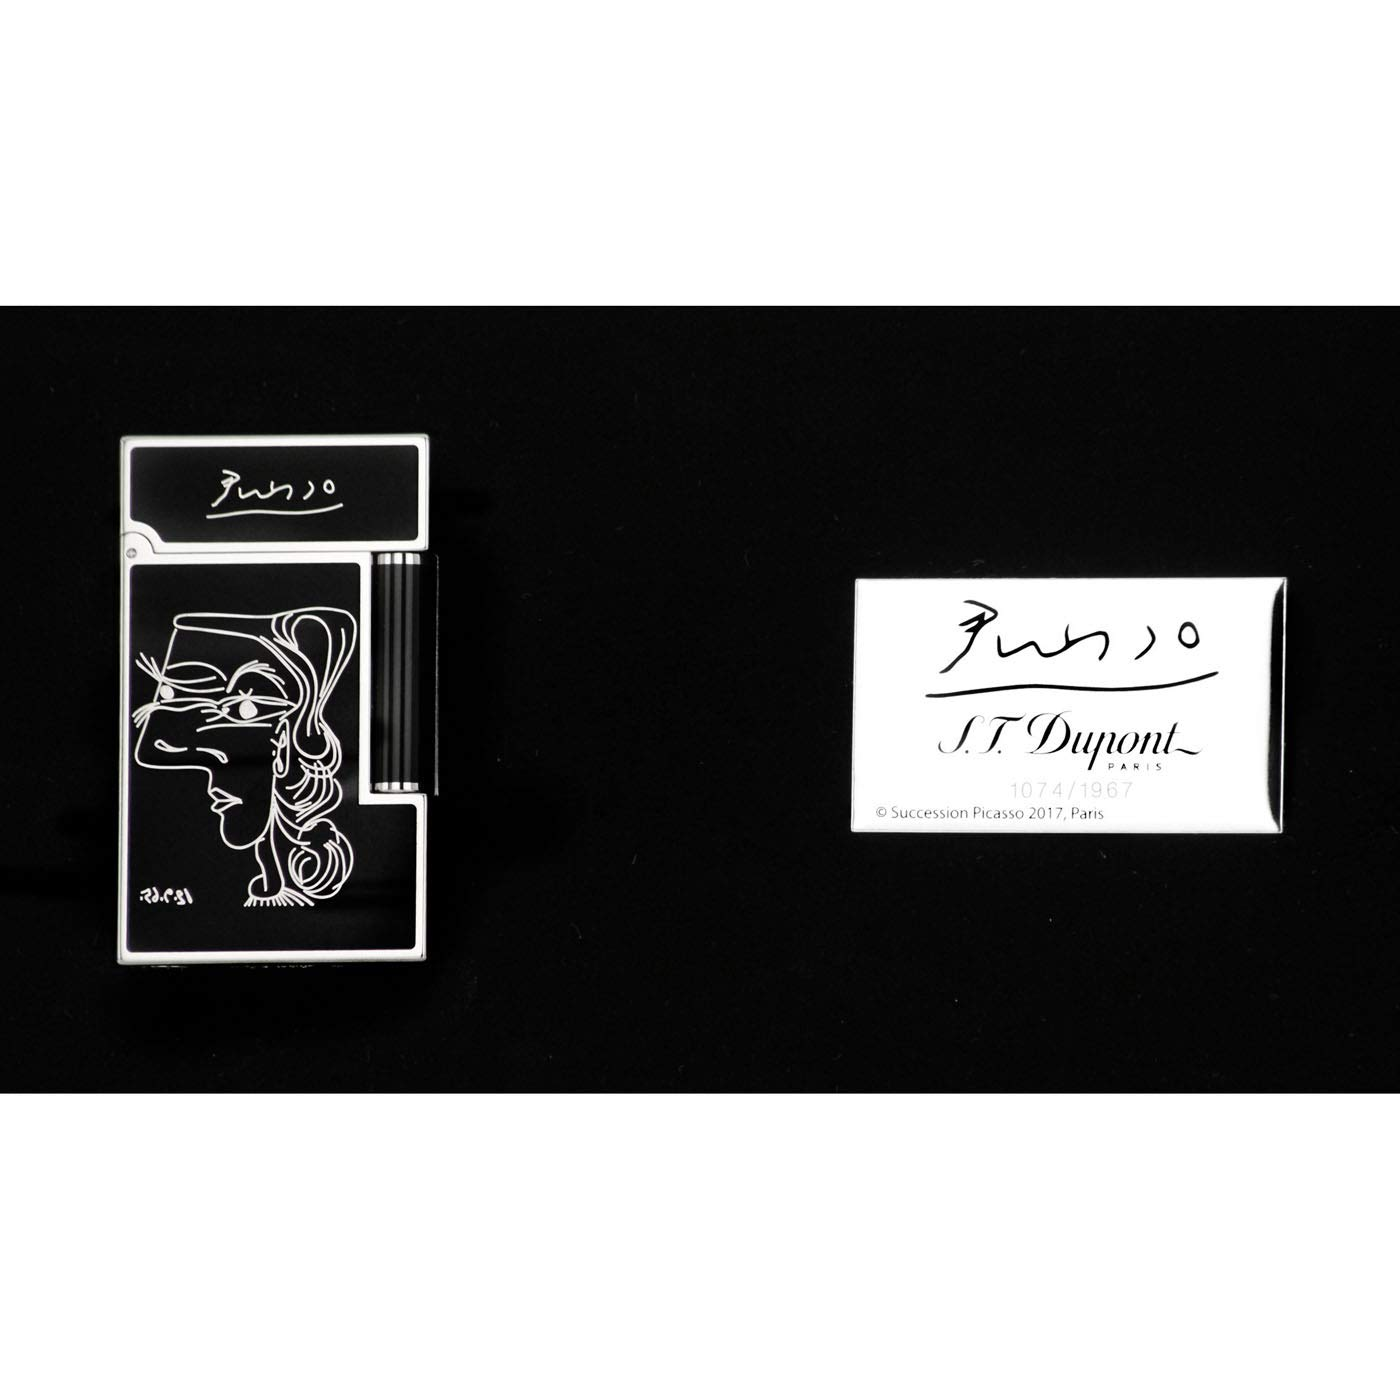 S.T. Dupont Ligne 2 Limited Edition Picasso 2018 Lighter 16105 by S.T. Dupont (Image #7)